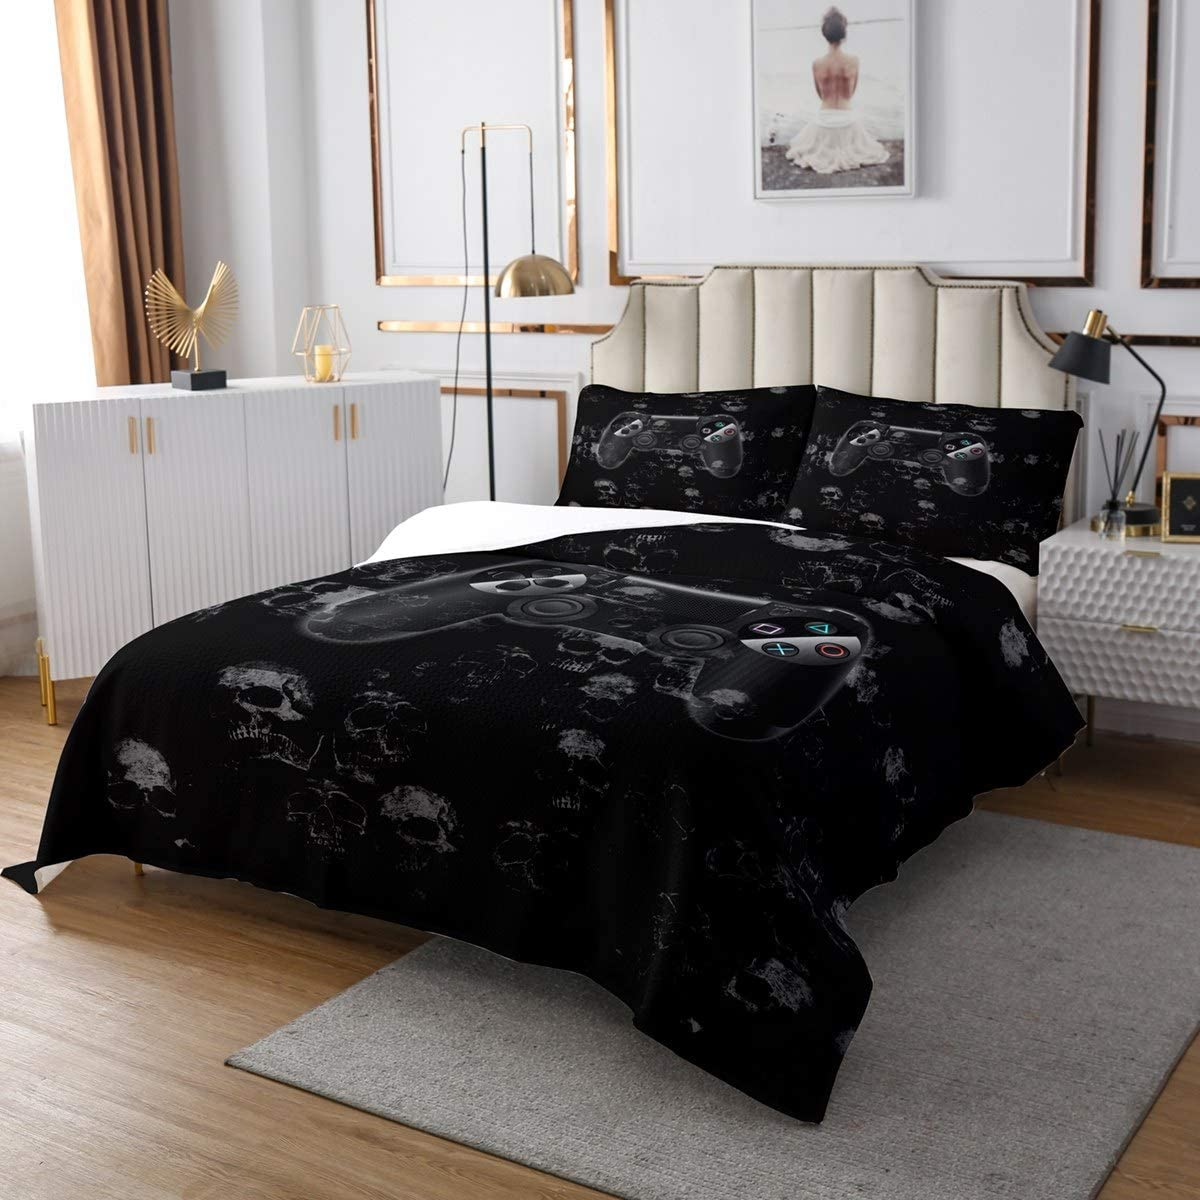 Erosebridal Gamer Quilted Coverlet Twin Boys Games Bedspread for Bedroom Video Game Gamepad Bed Cover Novelty Gaming Bedding Comforter Set Quilted 2 Piece Coverlet Set with 1 Pillow Case